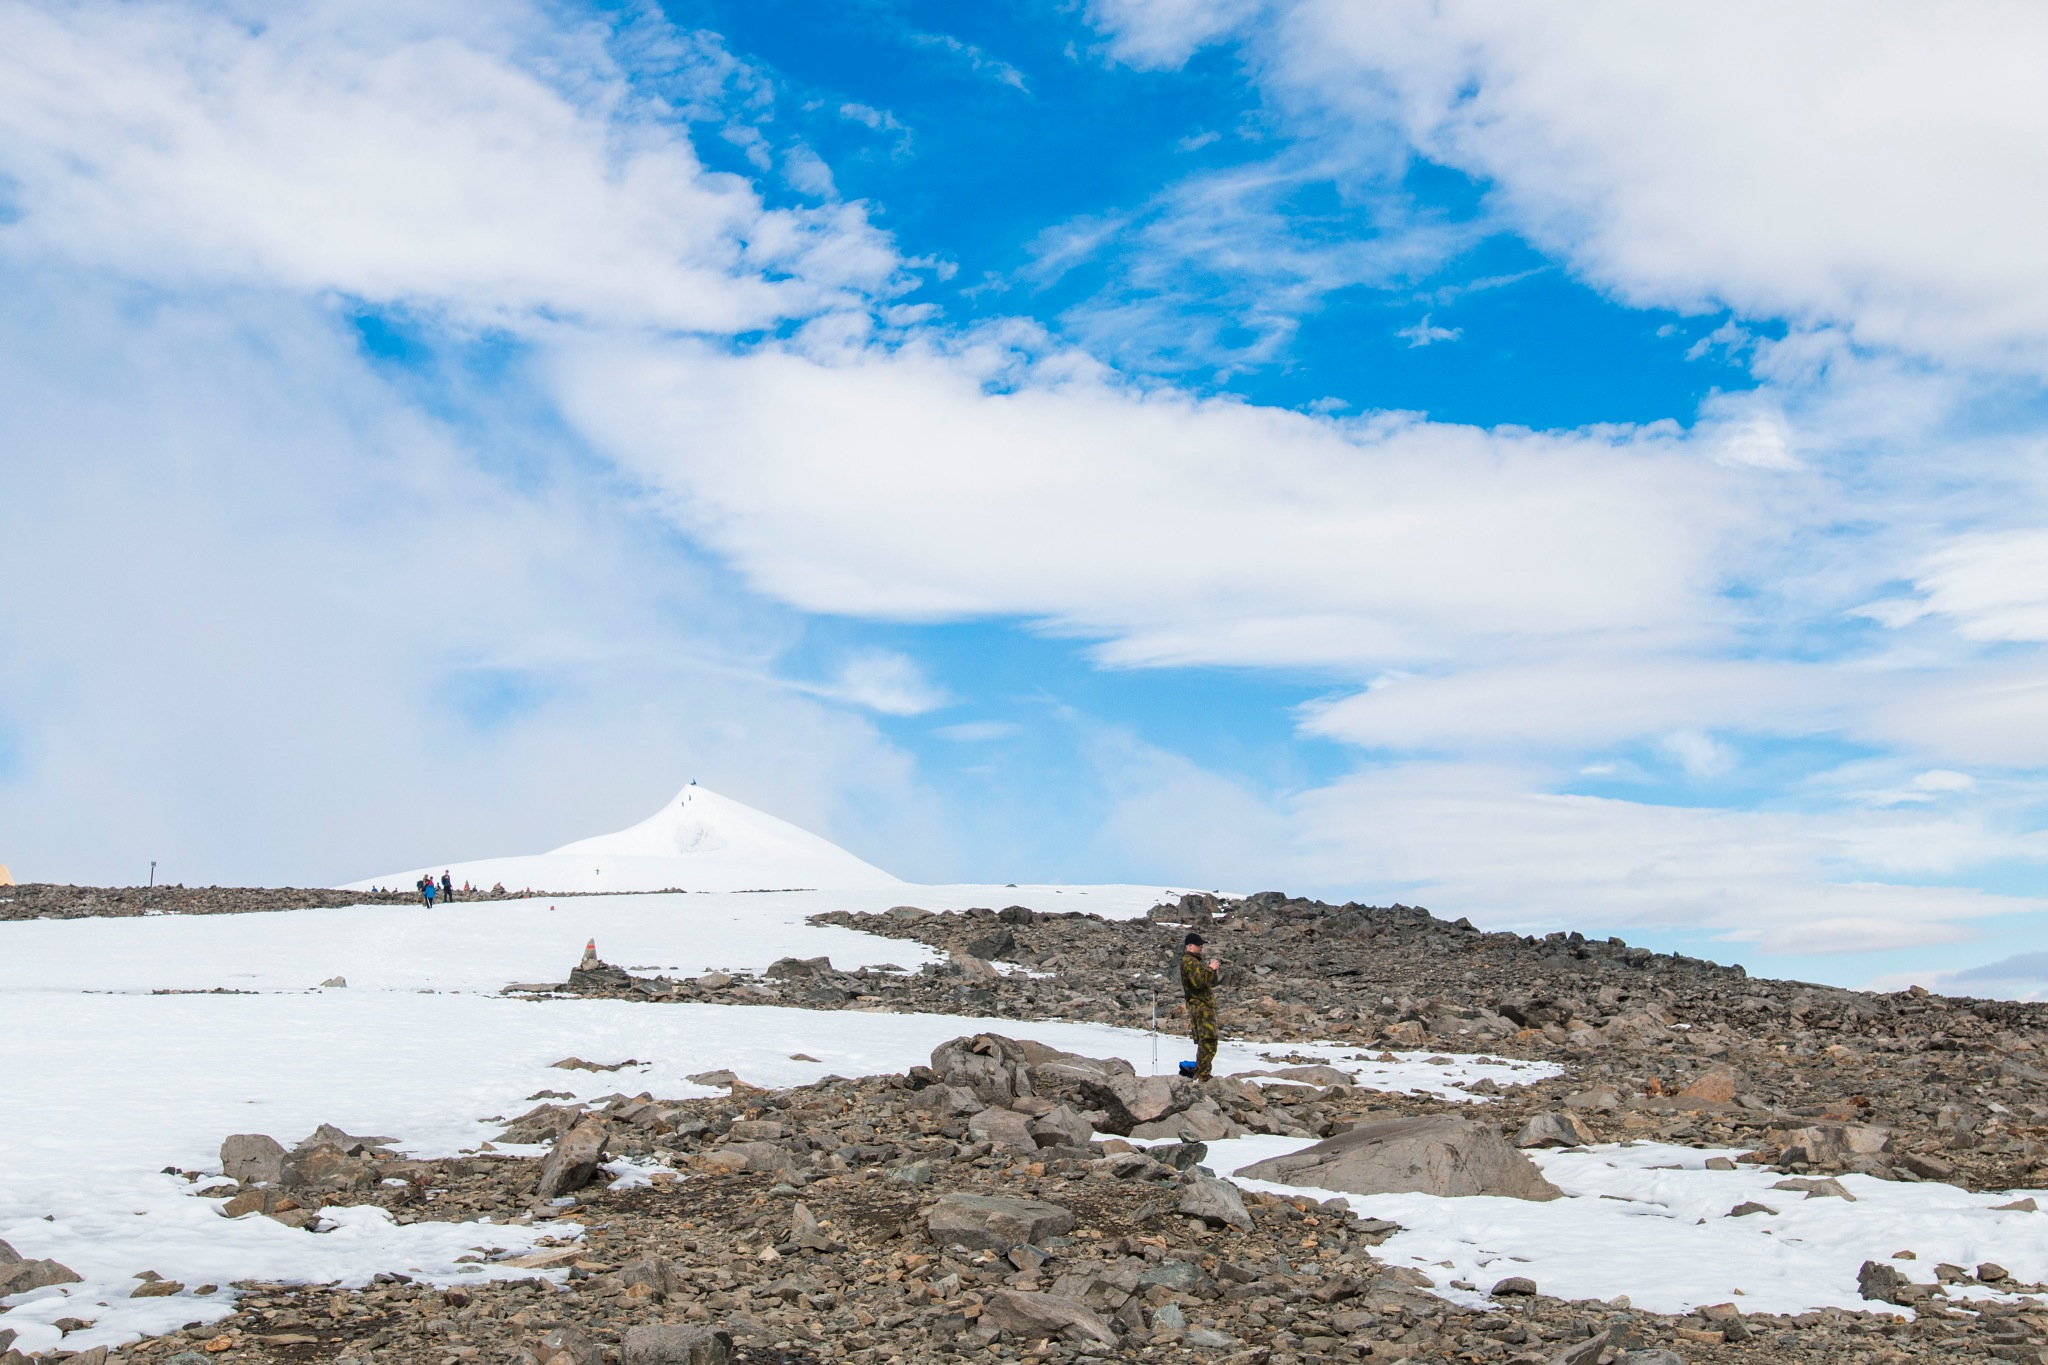 Top of the highest mountain in Sweden by Fotochicknroll